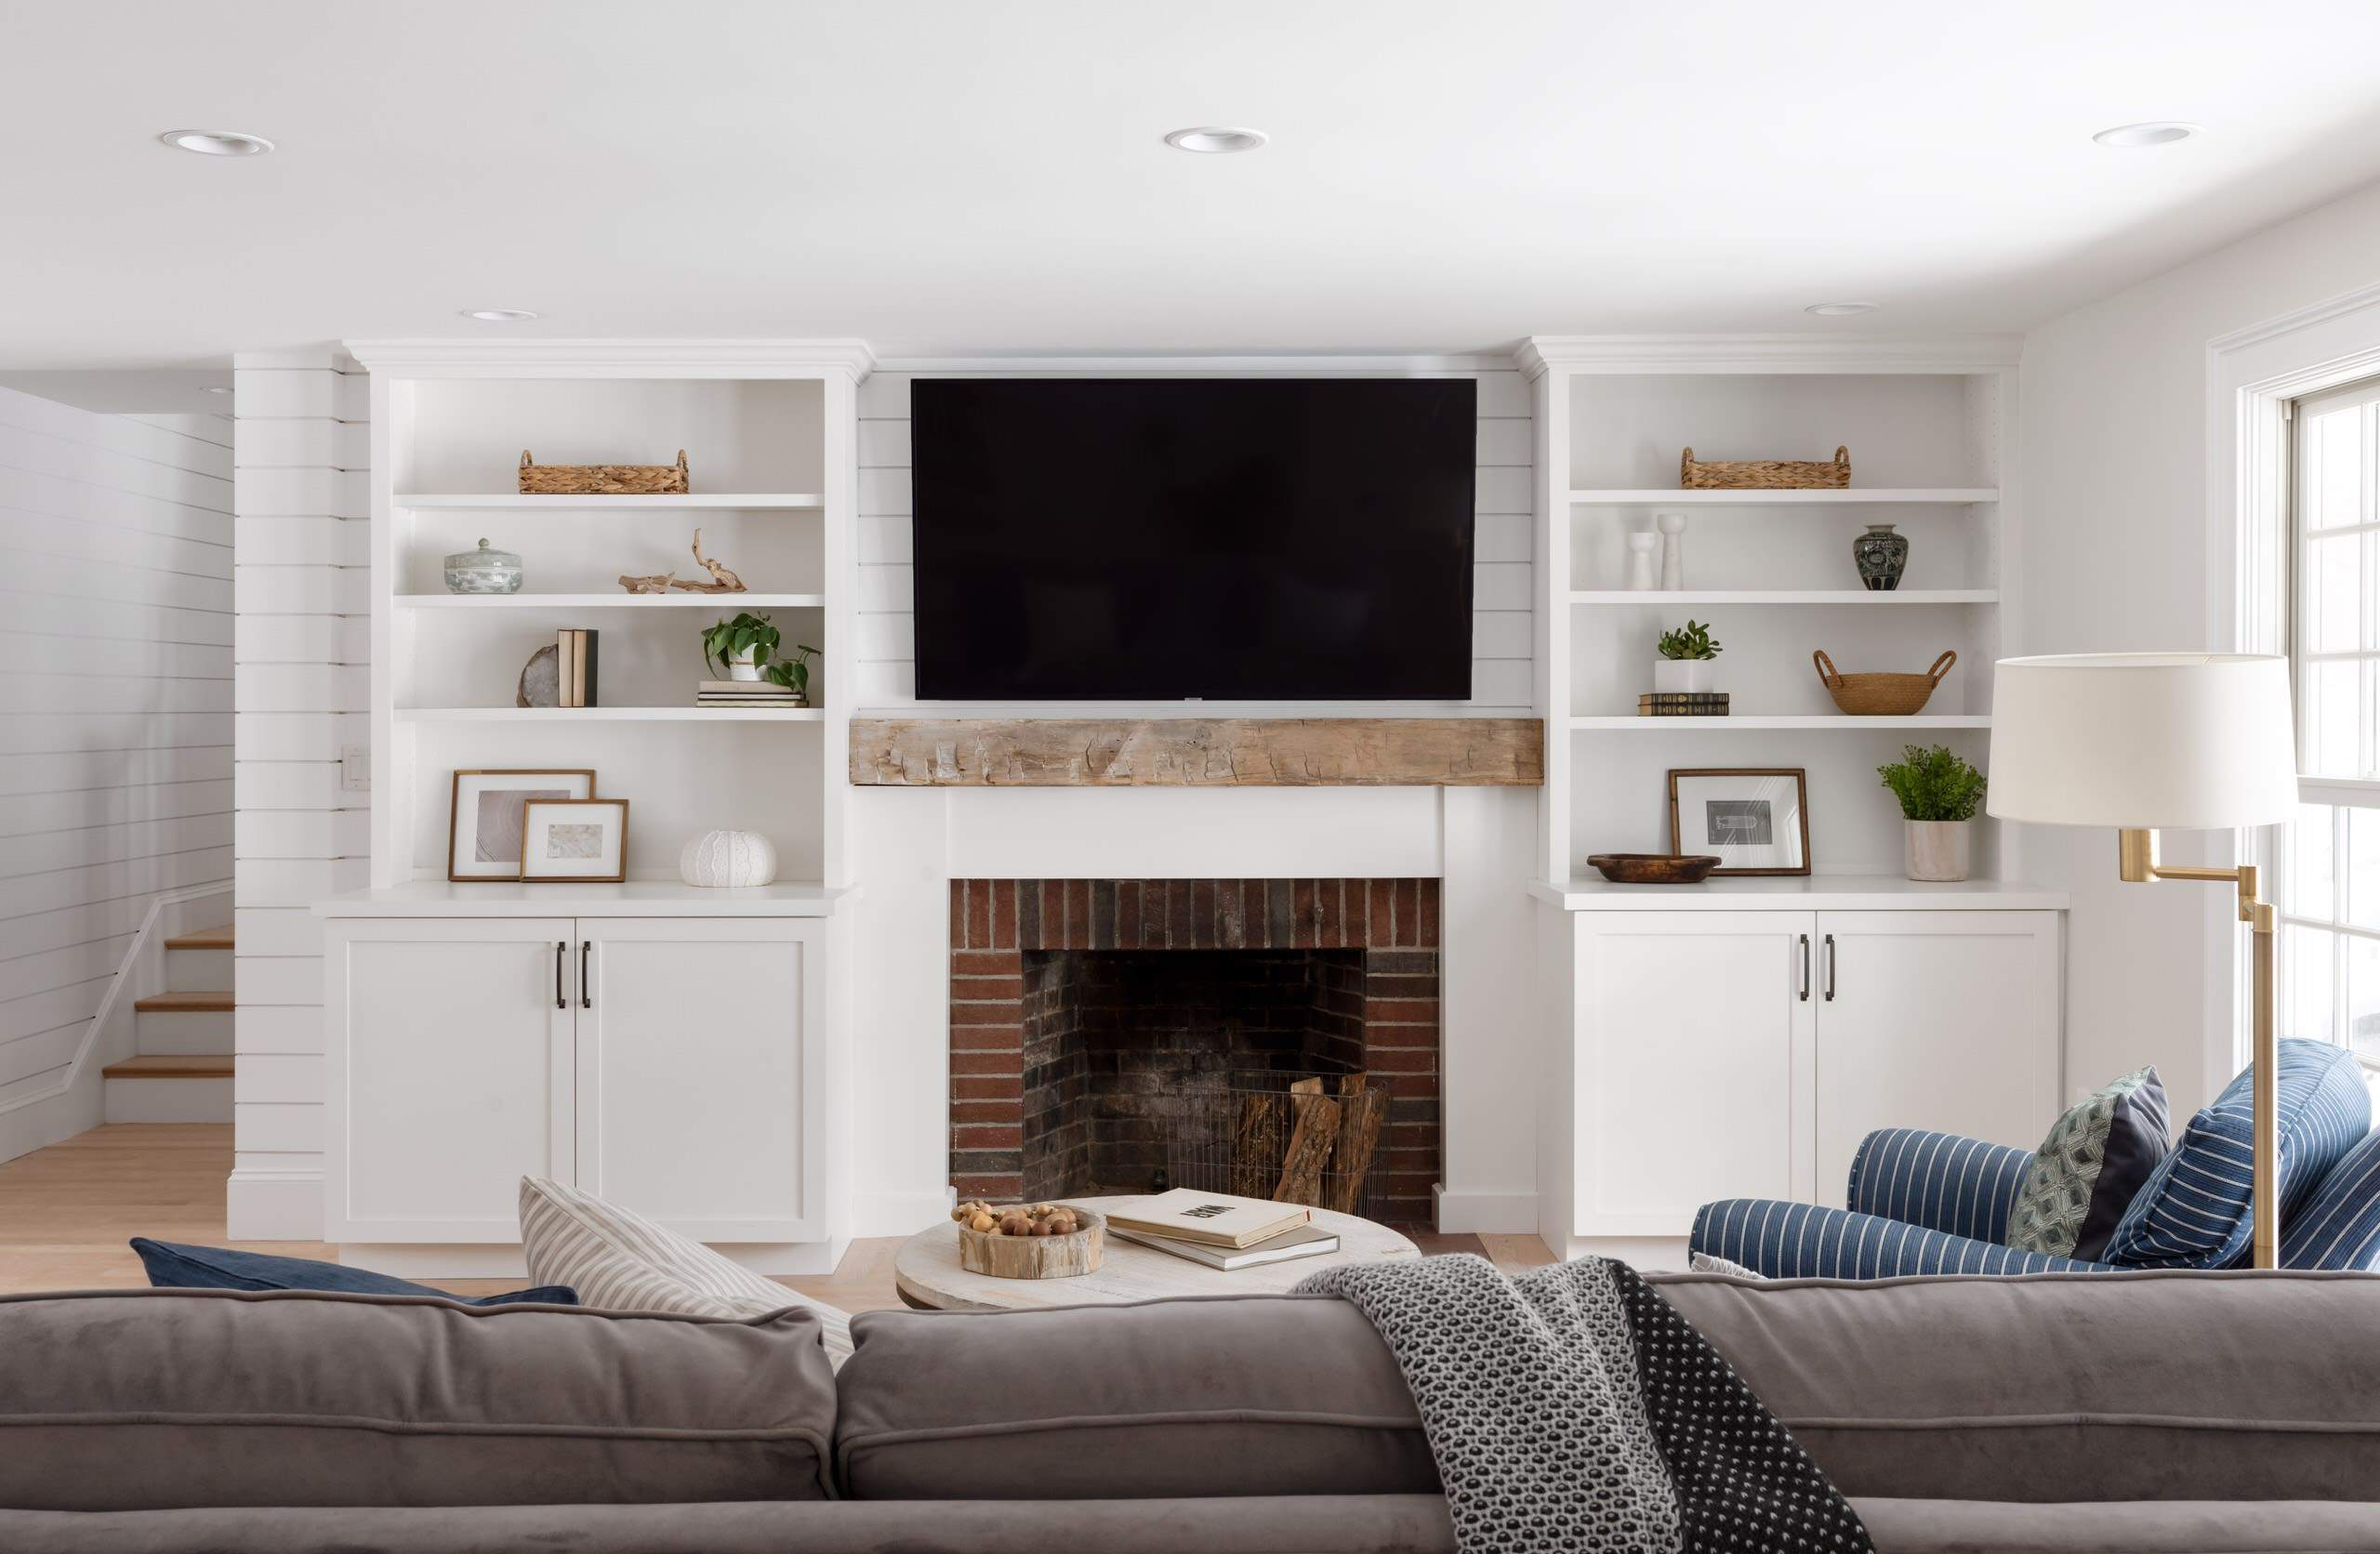 75 Beautiful Farmhouse Living Room With A Brick Fireplace Pictures Ideas December 2020 Houzz